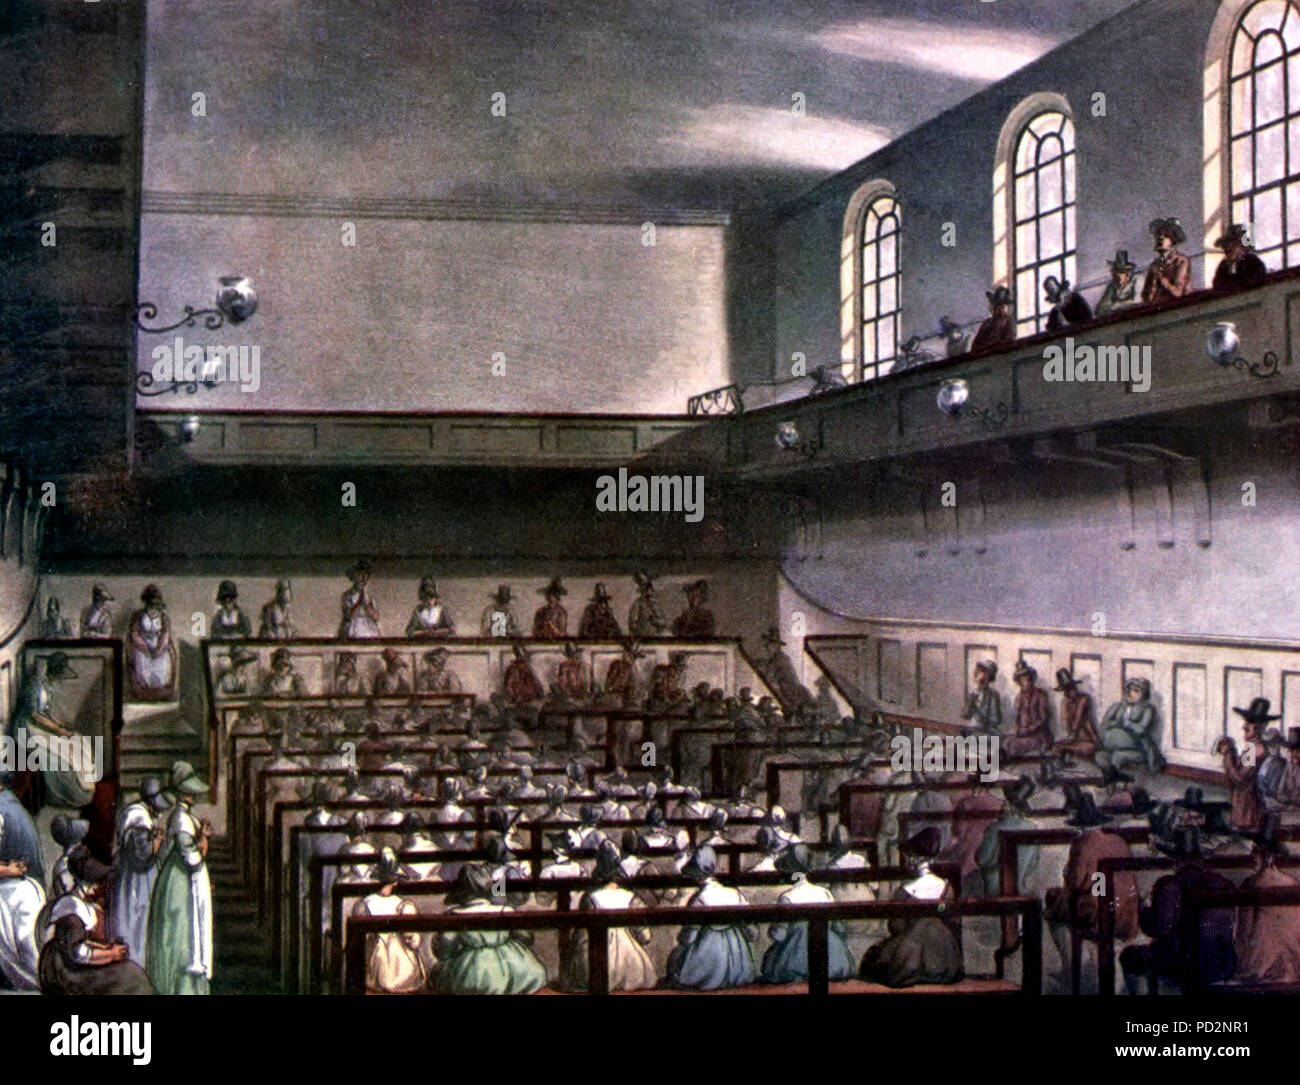 Conservative Friends worshipping in London in 1809. Friends are in traditional plain dress. At the front of the meeting house, the Recorded Ministers sit on a raised ministers' gallery facing the rest of the meeting, with the elders sitting on the bench in front of them, also facing the meeting. Men and women are segregated, but both are able to minister. - Stock Image